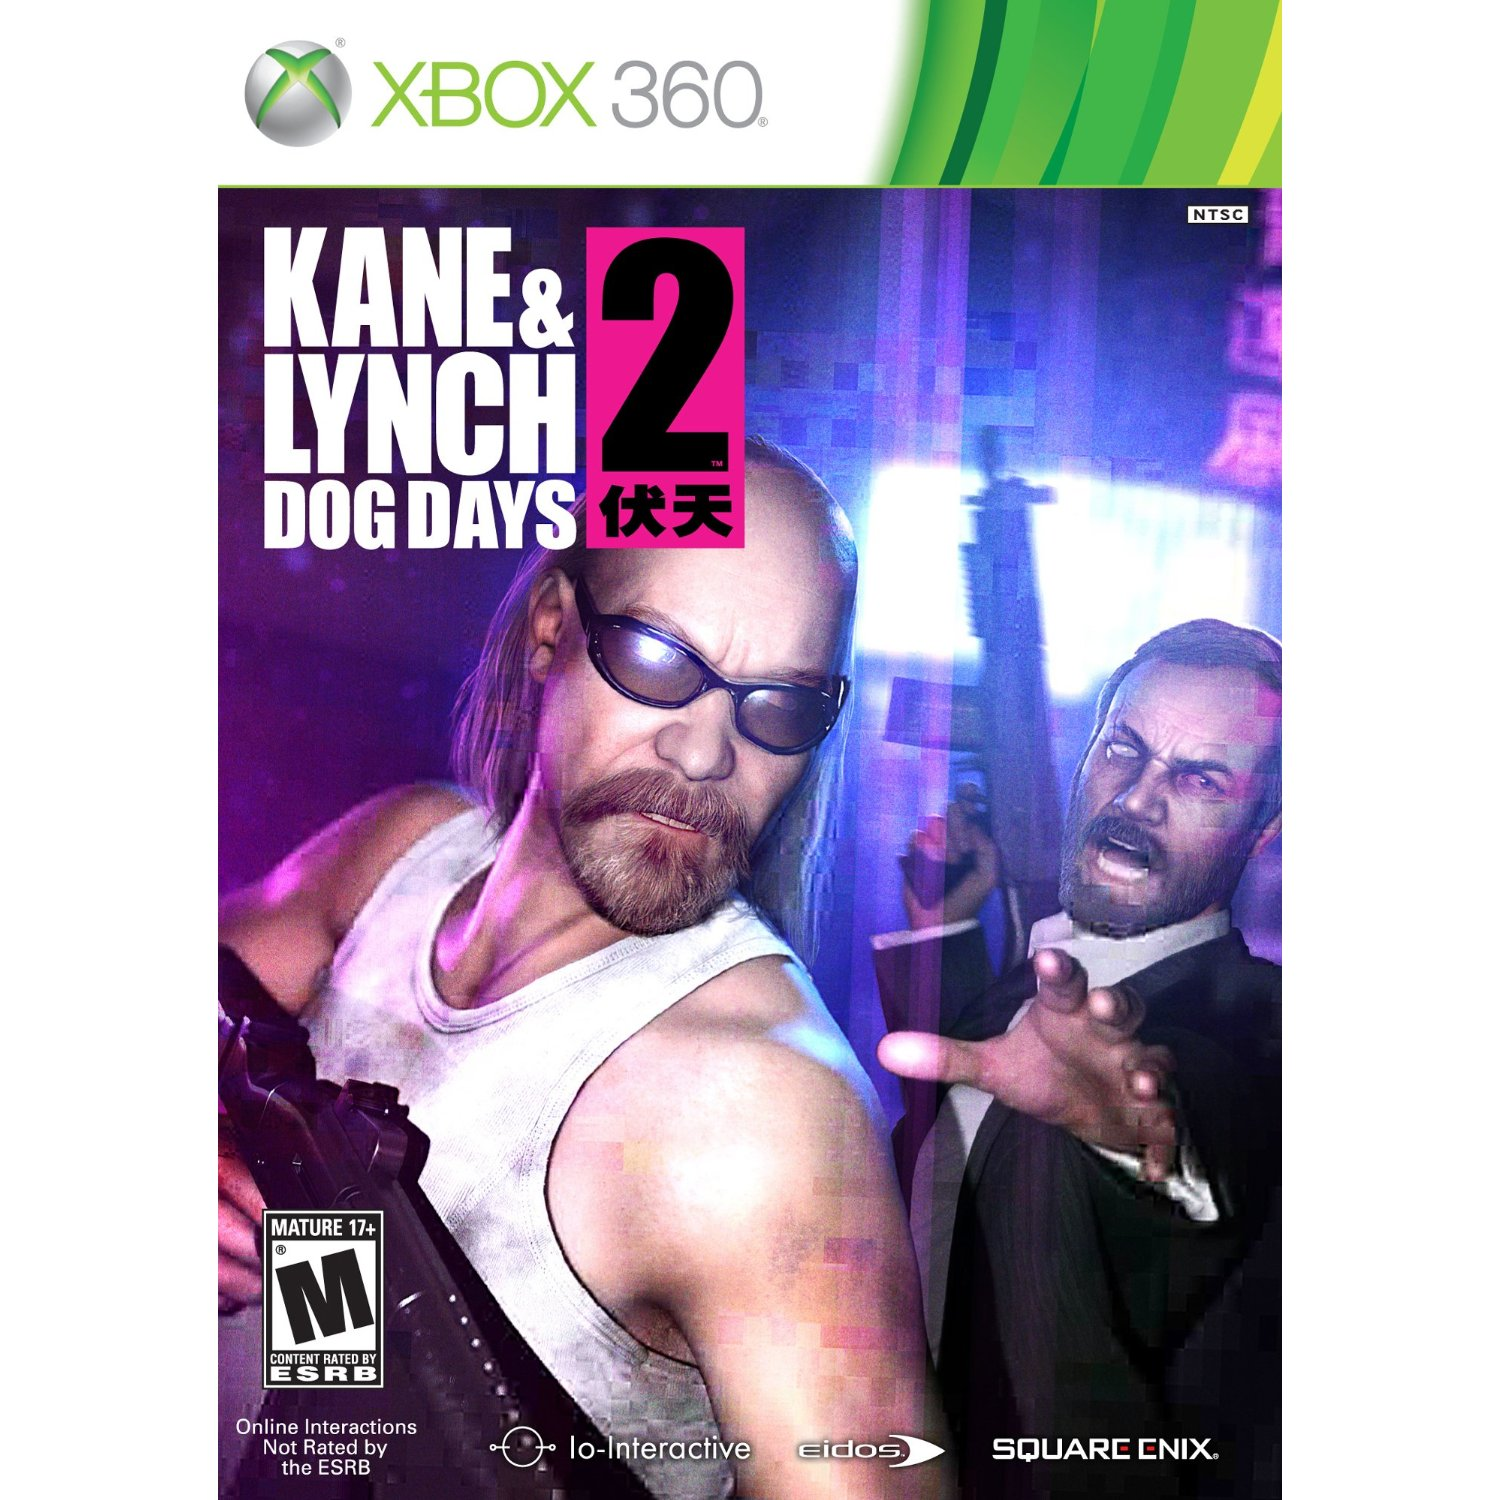 360: KANE AND LYNCH 2: DOG DAYS (COMPLETE)